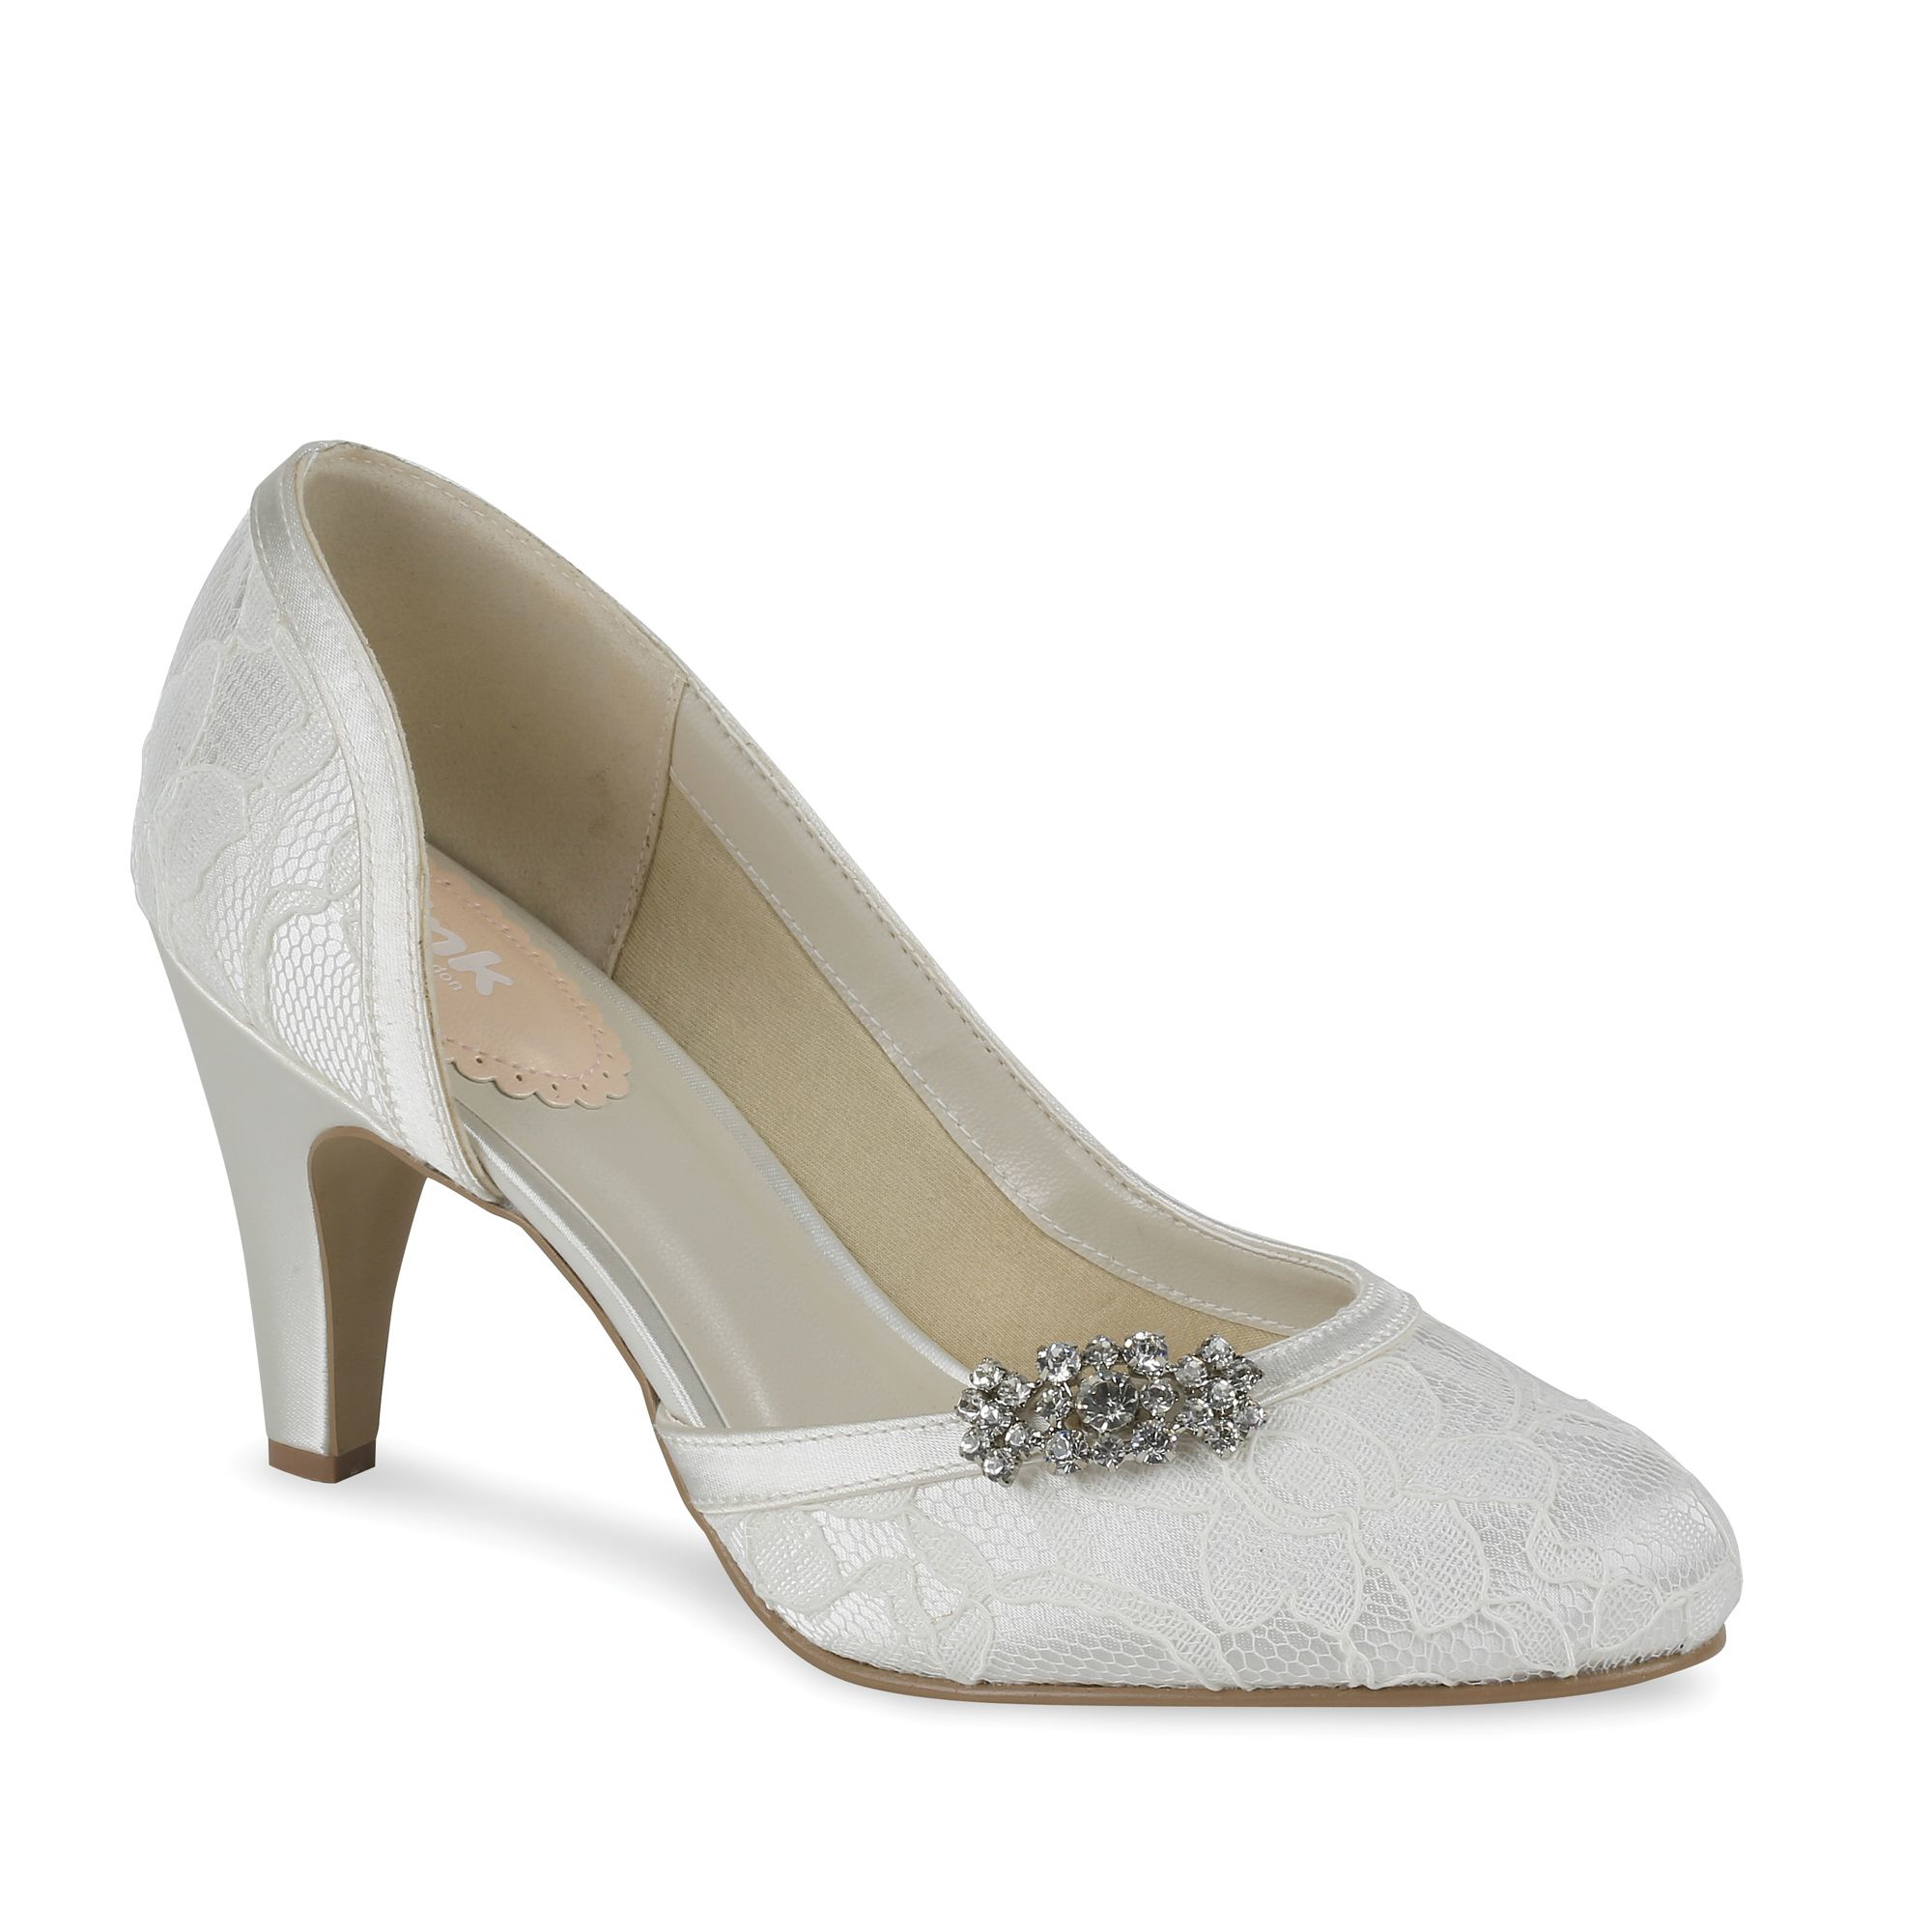 Paradox London Pink Lace Covered Round Toe Shoes In White